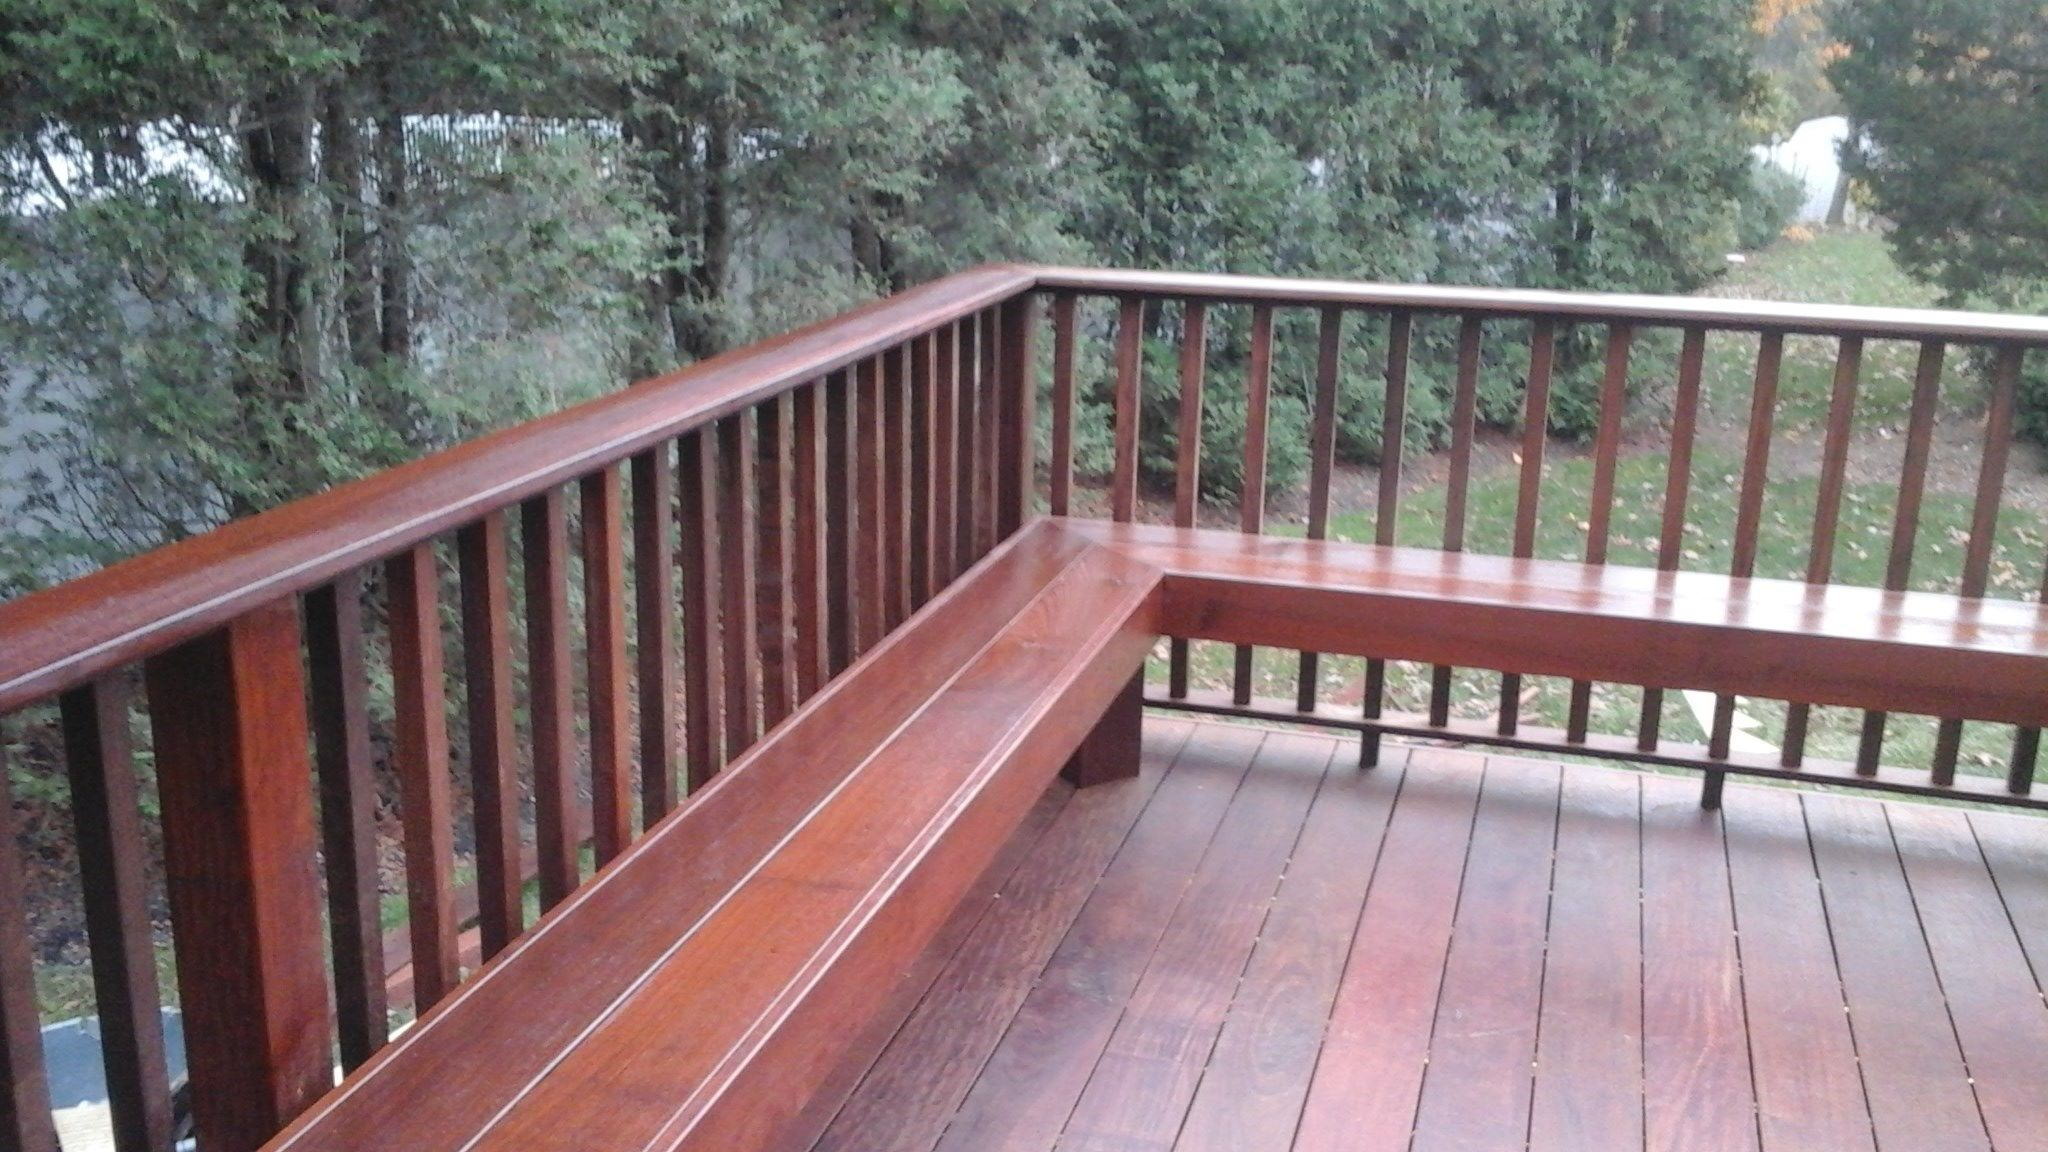 Deck in Cold Spring Harbor, NY - Picture 3206